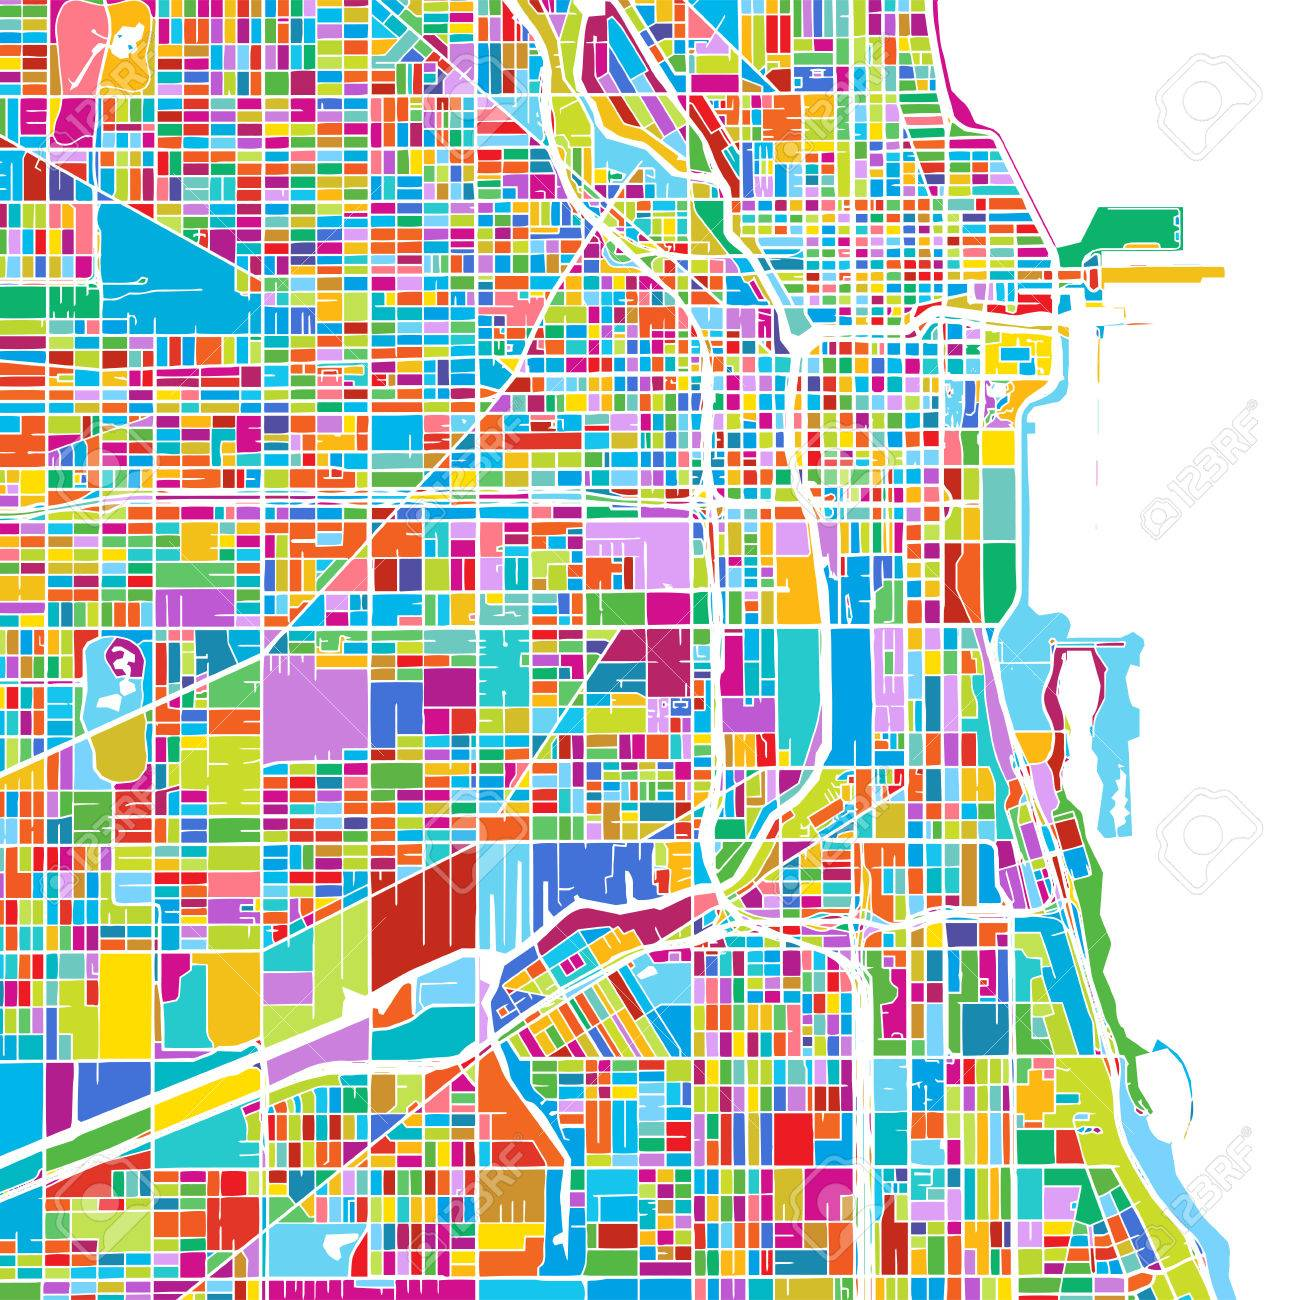 image regarding Printable Map of Chicago called Chicago, United states, Colourful Vector Map, printable determine edition,..